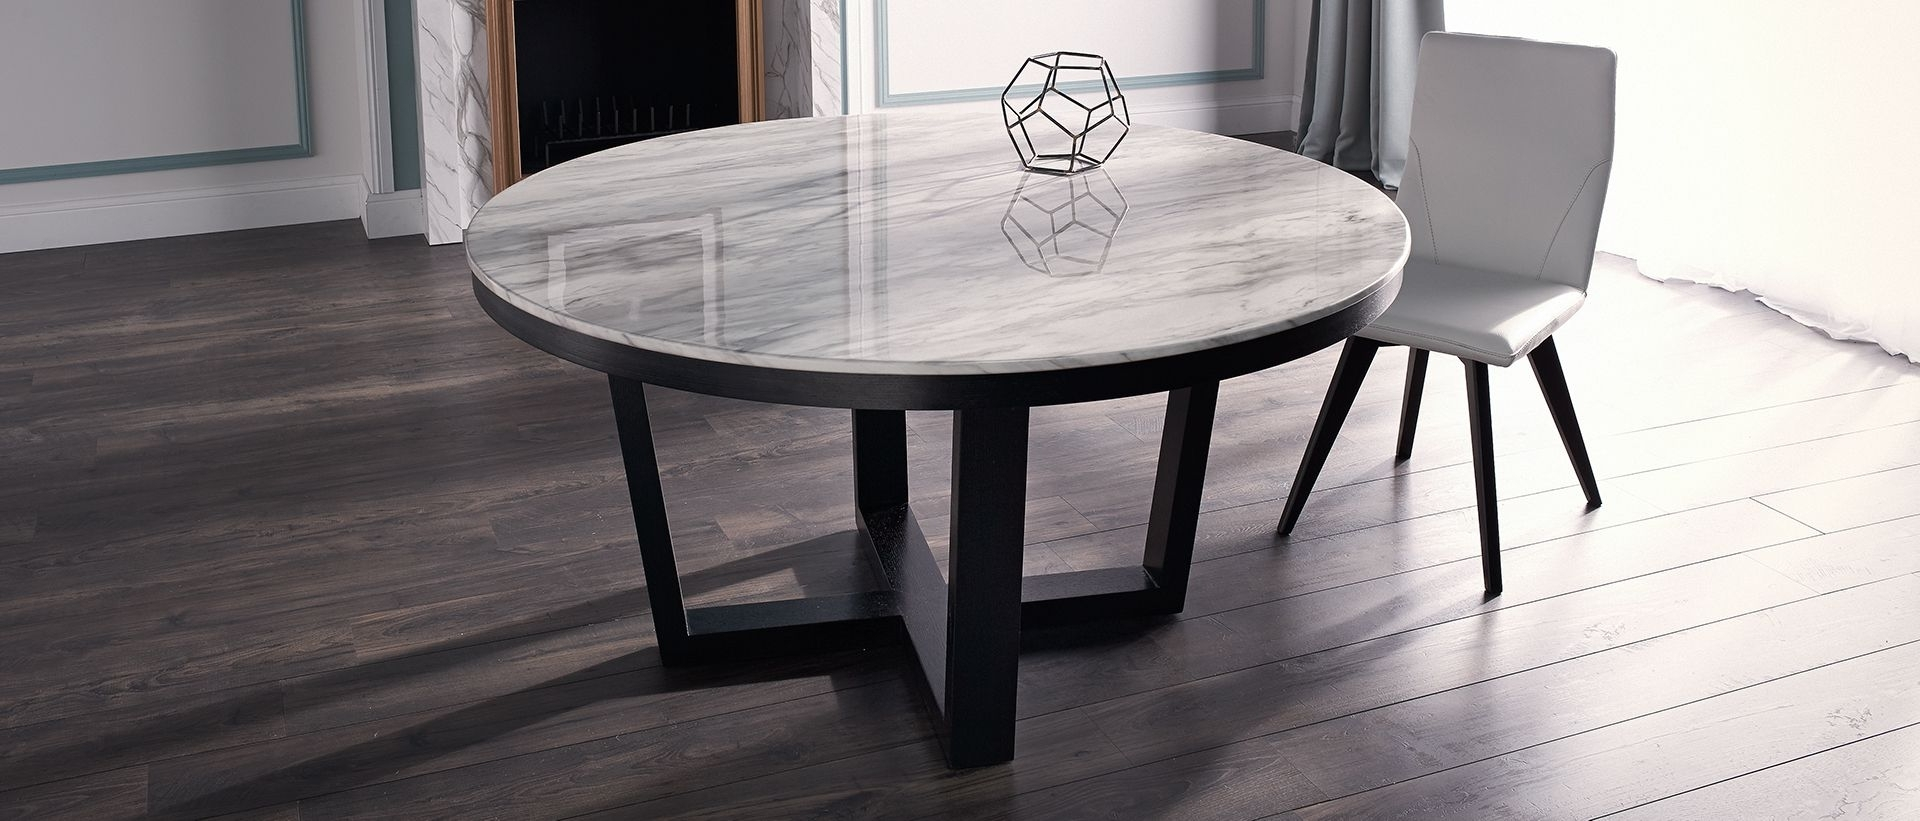 2017 Perth Glass Dining Tables Pertaining To Nick Scali (Gallery 3 of 25)